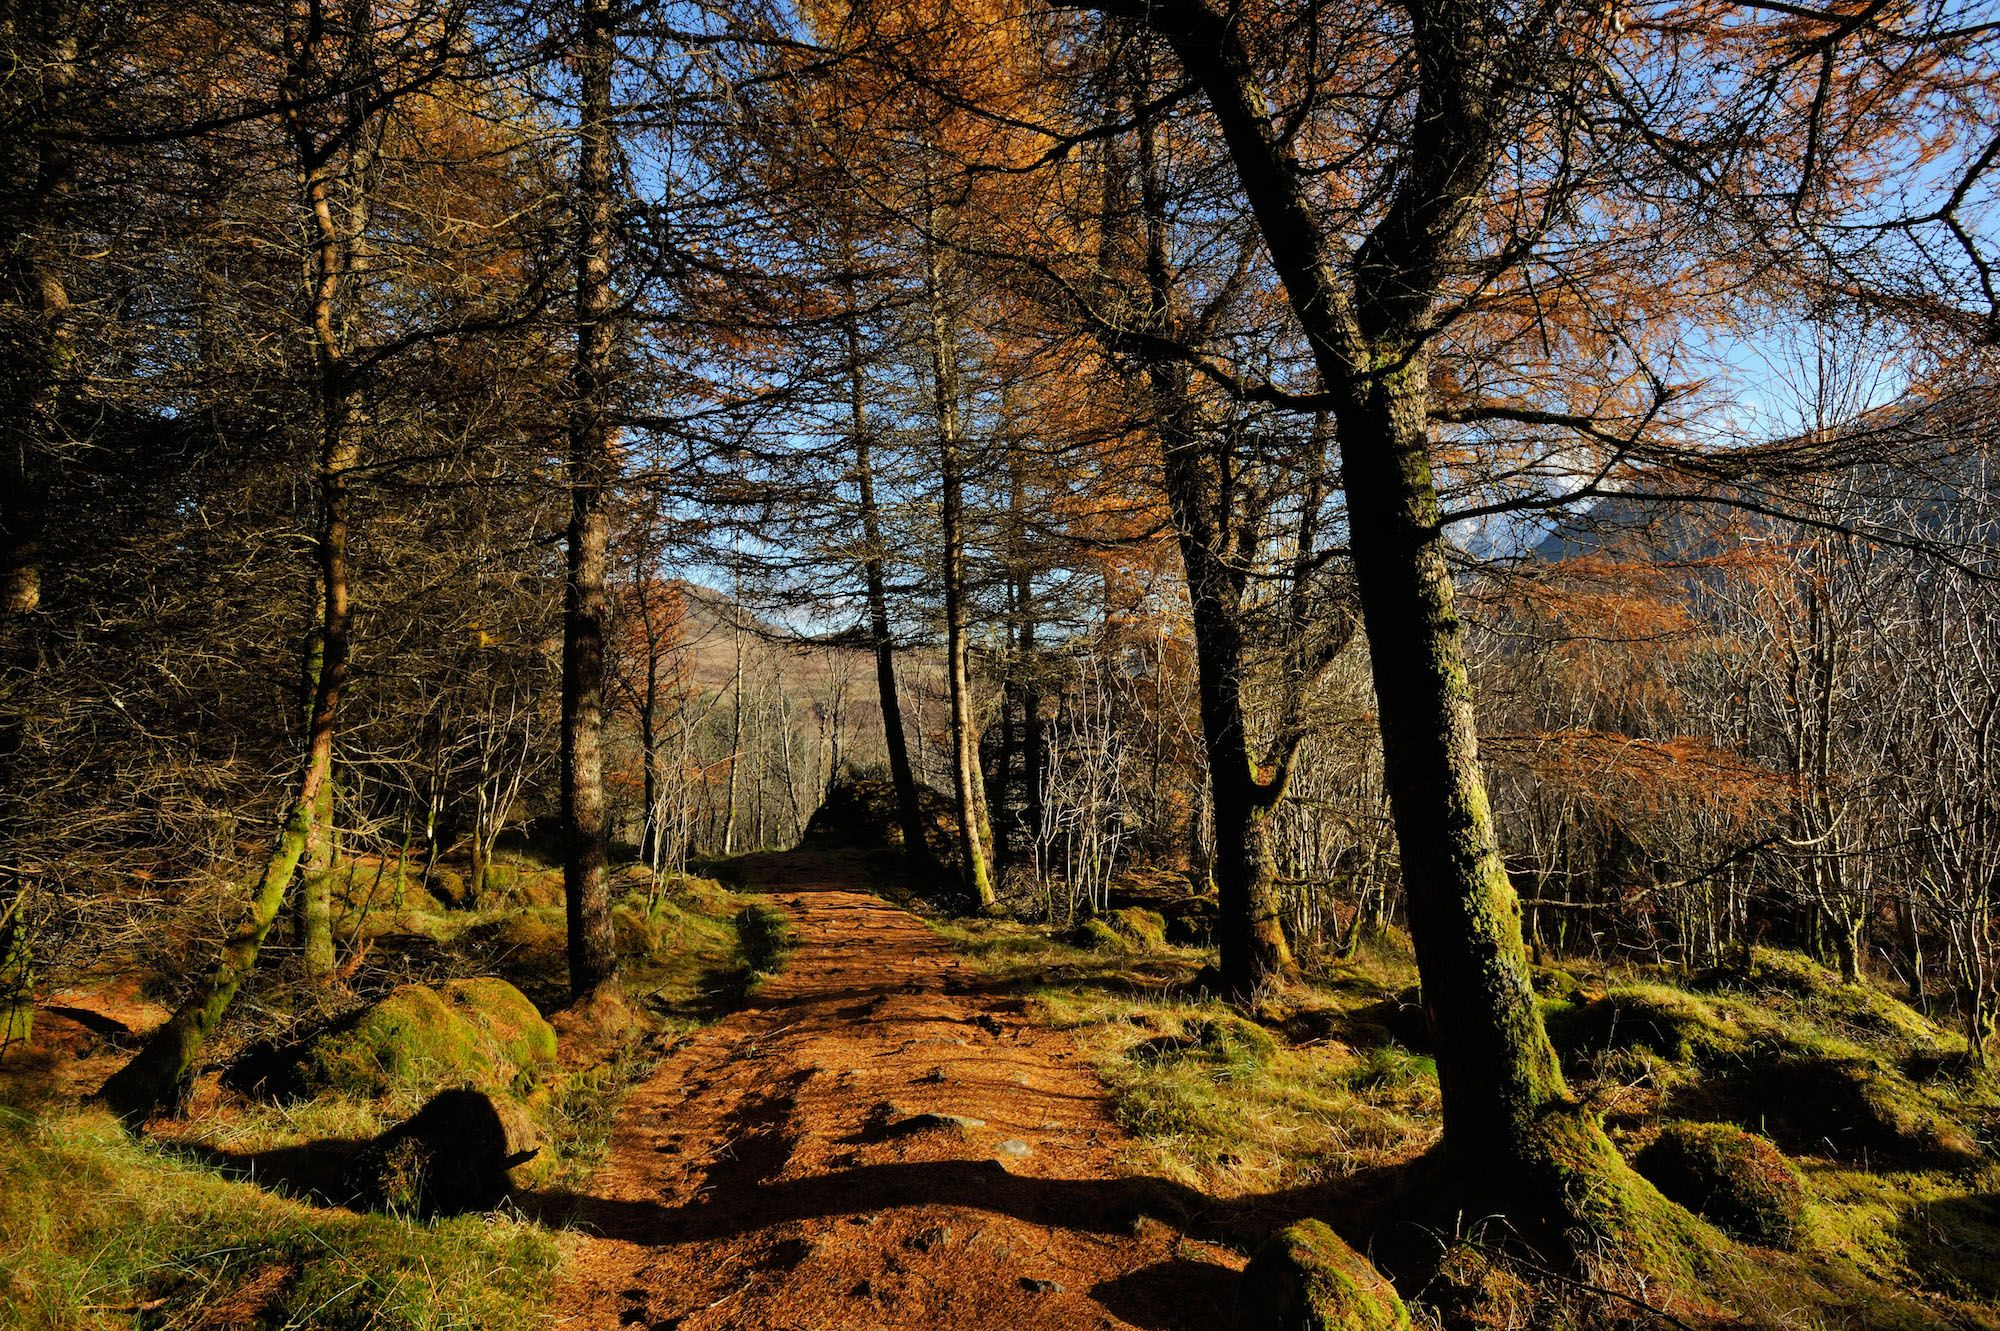 Larch trees in autumn colours along the trail of the West Highland Way near Crianlarich Scottish Highlands UK